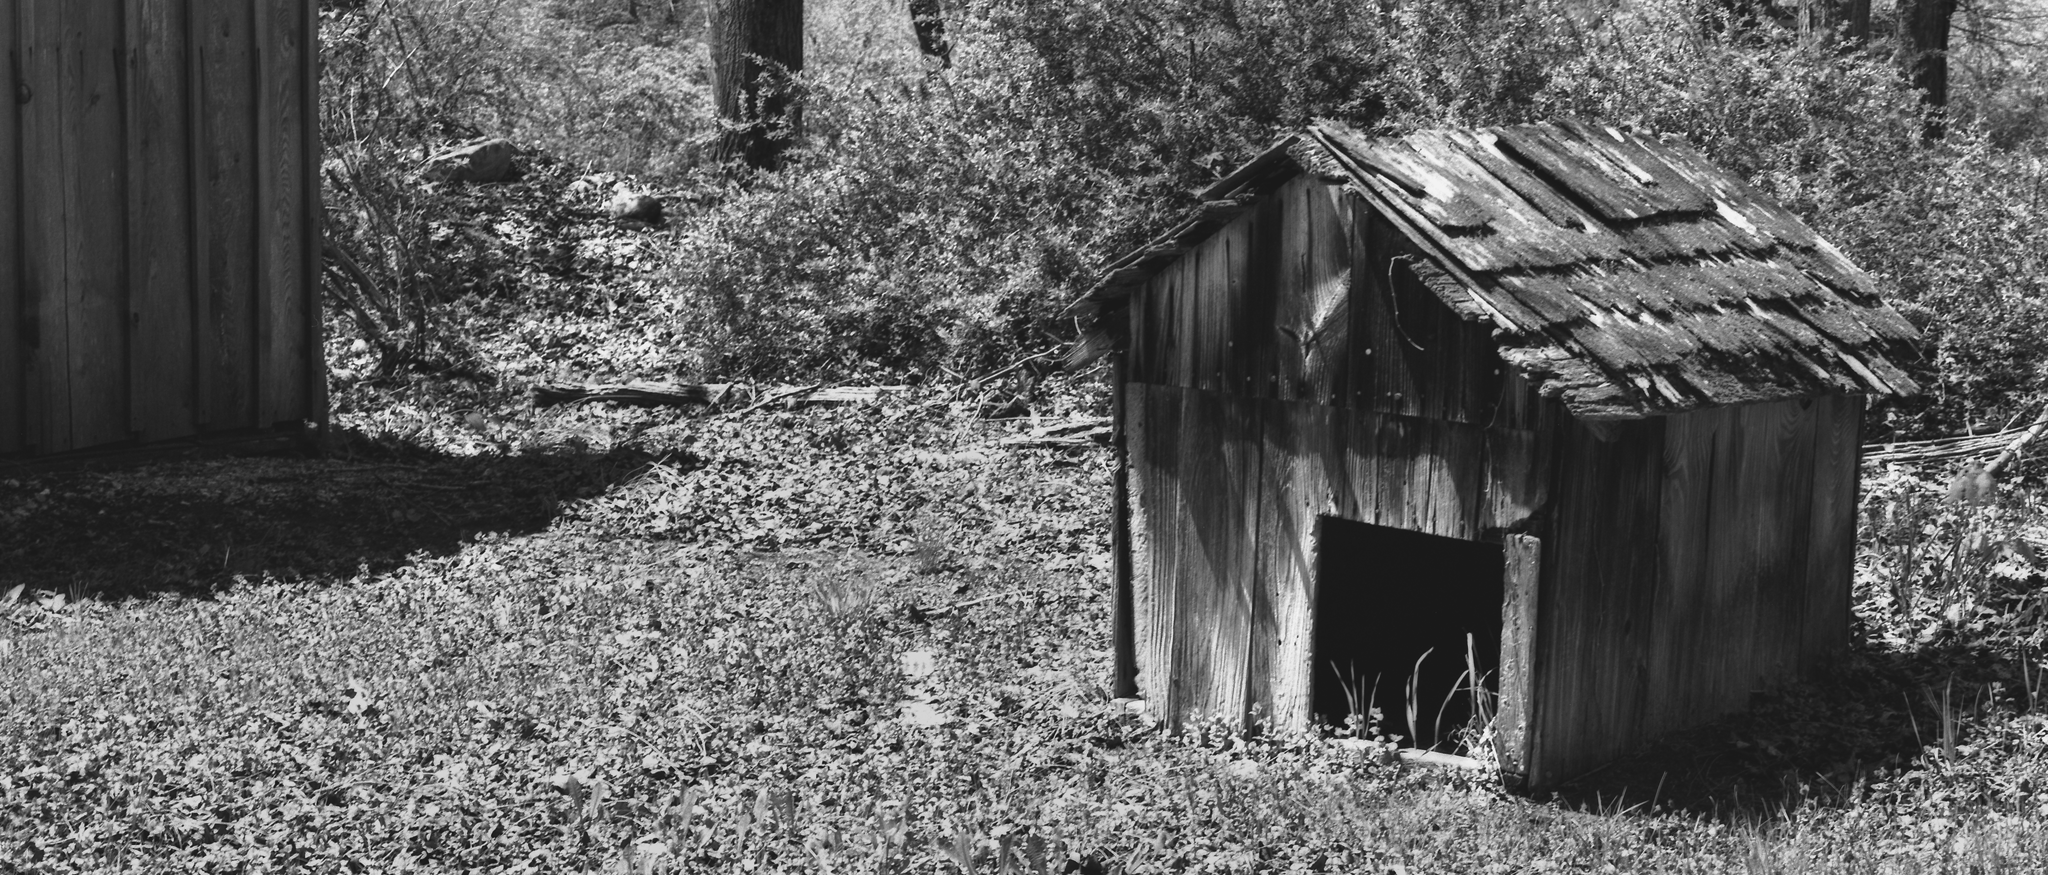 4x5_for_365_project_0143_Millbrook_doghouse.png